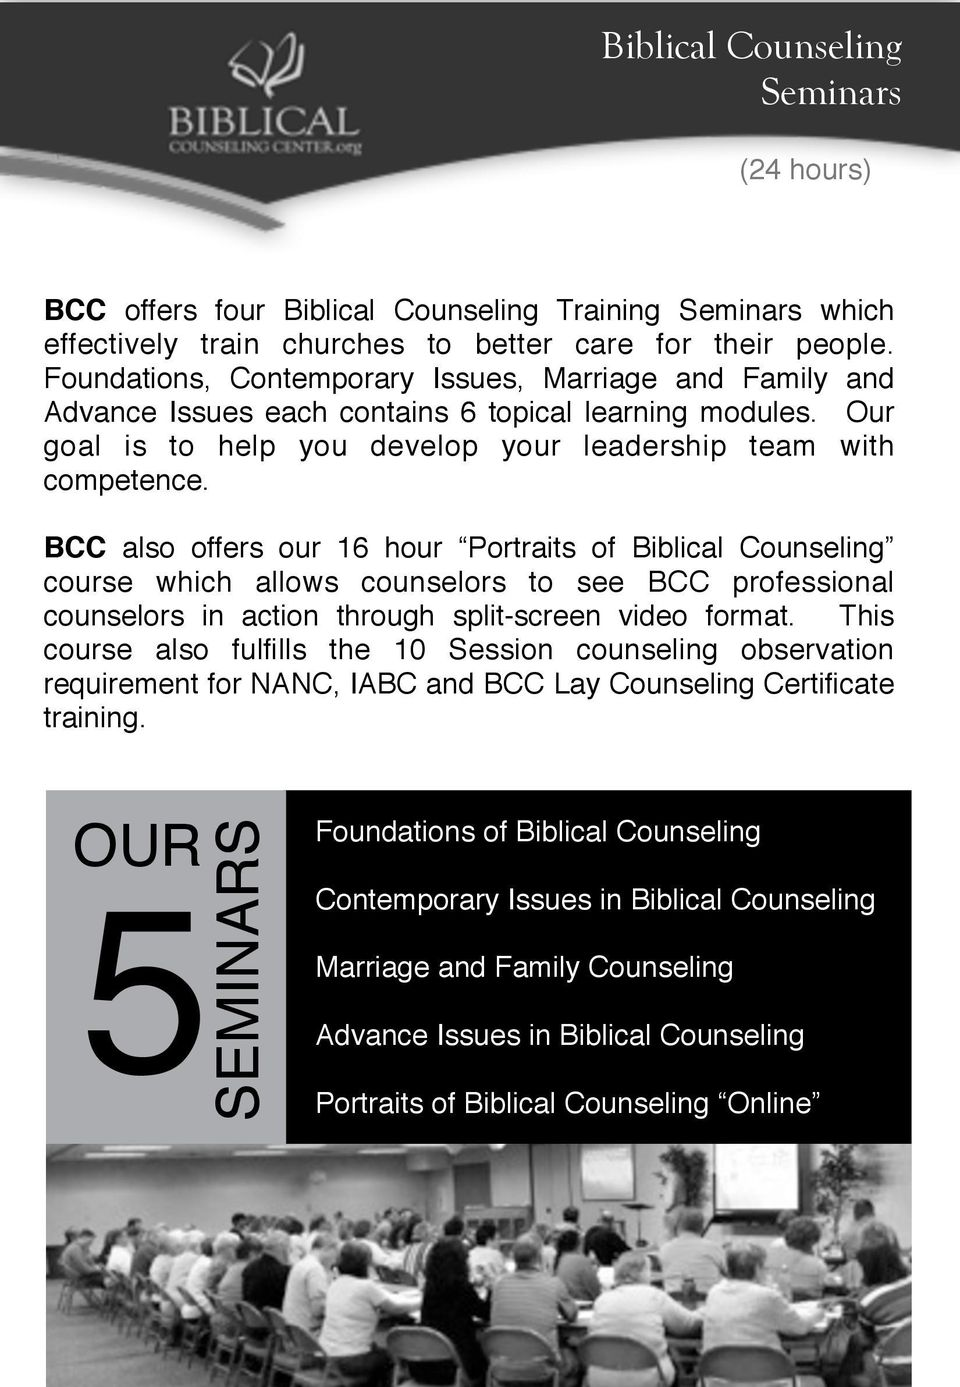 BCC also offers our 16 hour Portraits of Biblical Counseling course which allows counselors to see BCC professional counselors in action through split-screen video format.